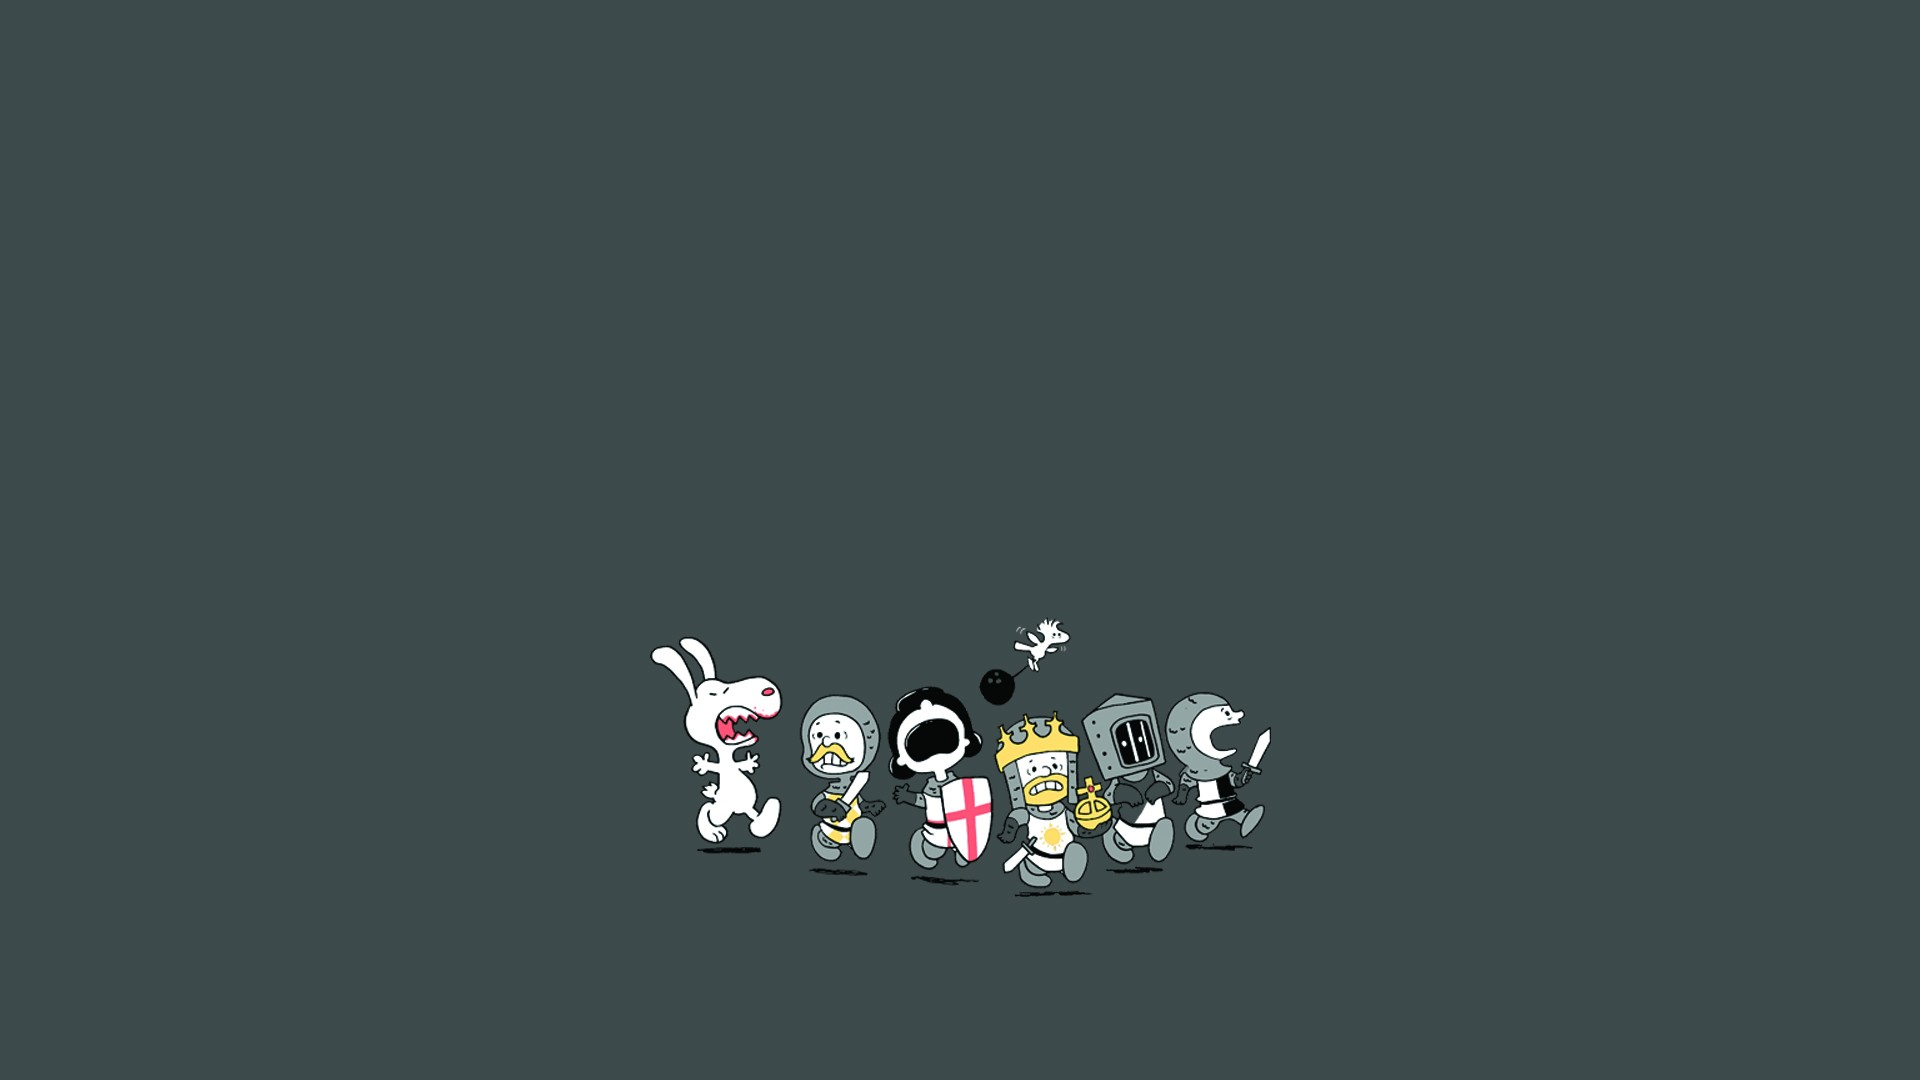 Monty python holy grail peanuts knights humor funny wallpaper monty python holy grail peanuts knights humor funny wallpaper 1920x1080 91374 wallpaperup voltagebd Gallery